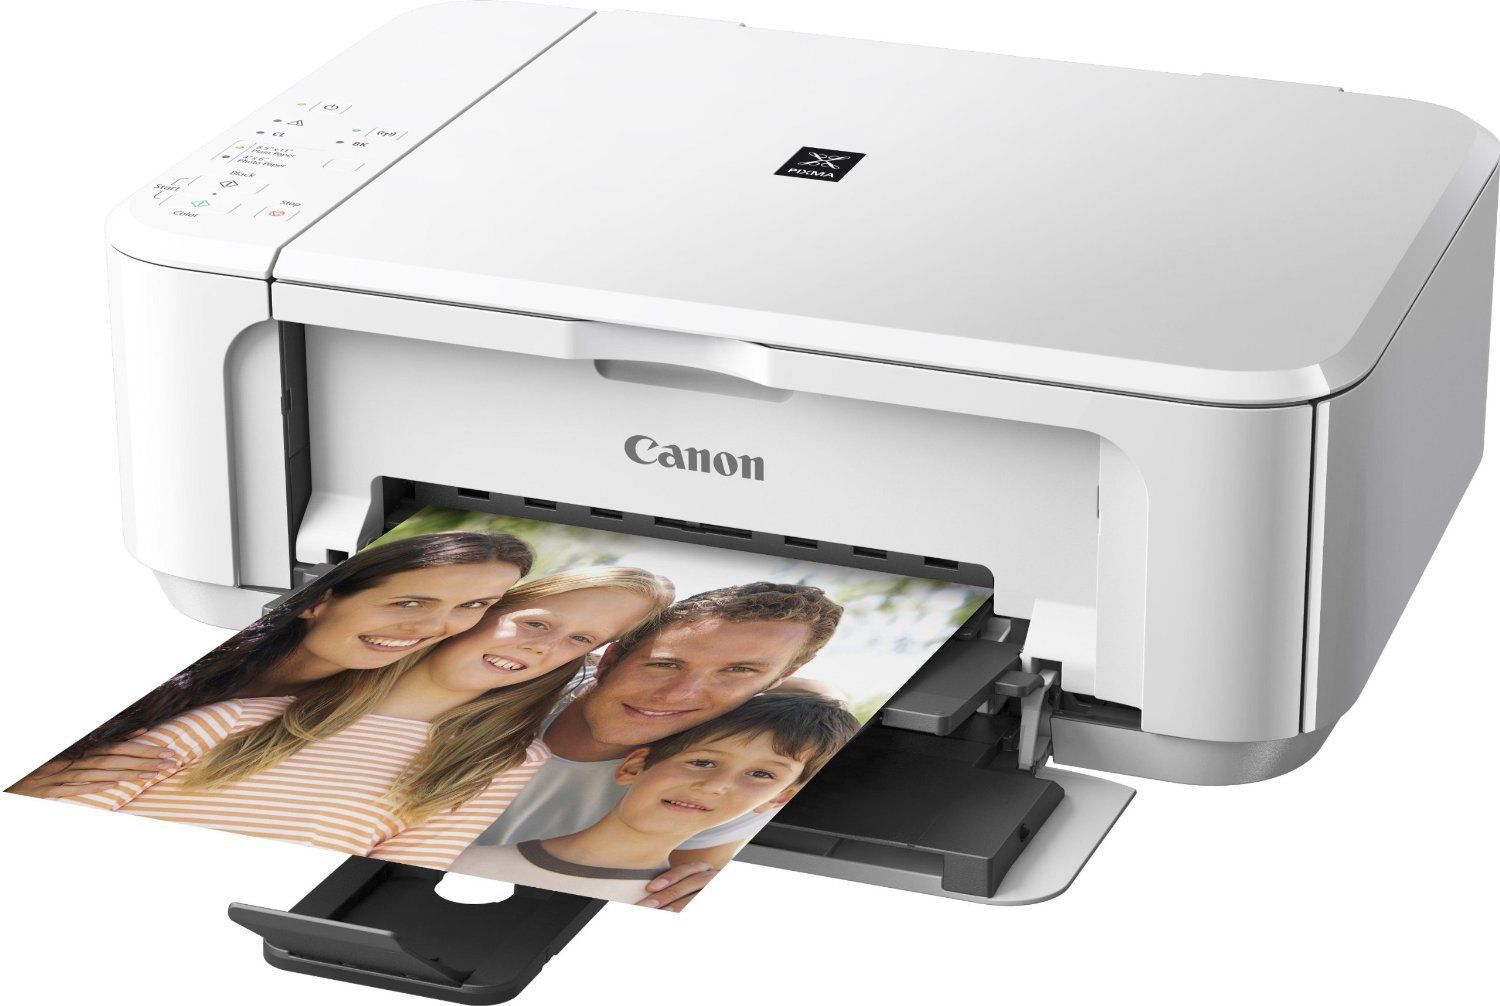 02 canon pixma mg3550 all in one wireless printer scanner copier in canon pixma mg3550 all in one wireless printer scanner copier in white nb 4960999975269 ebay fandeluxe Images